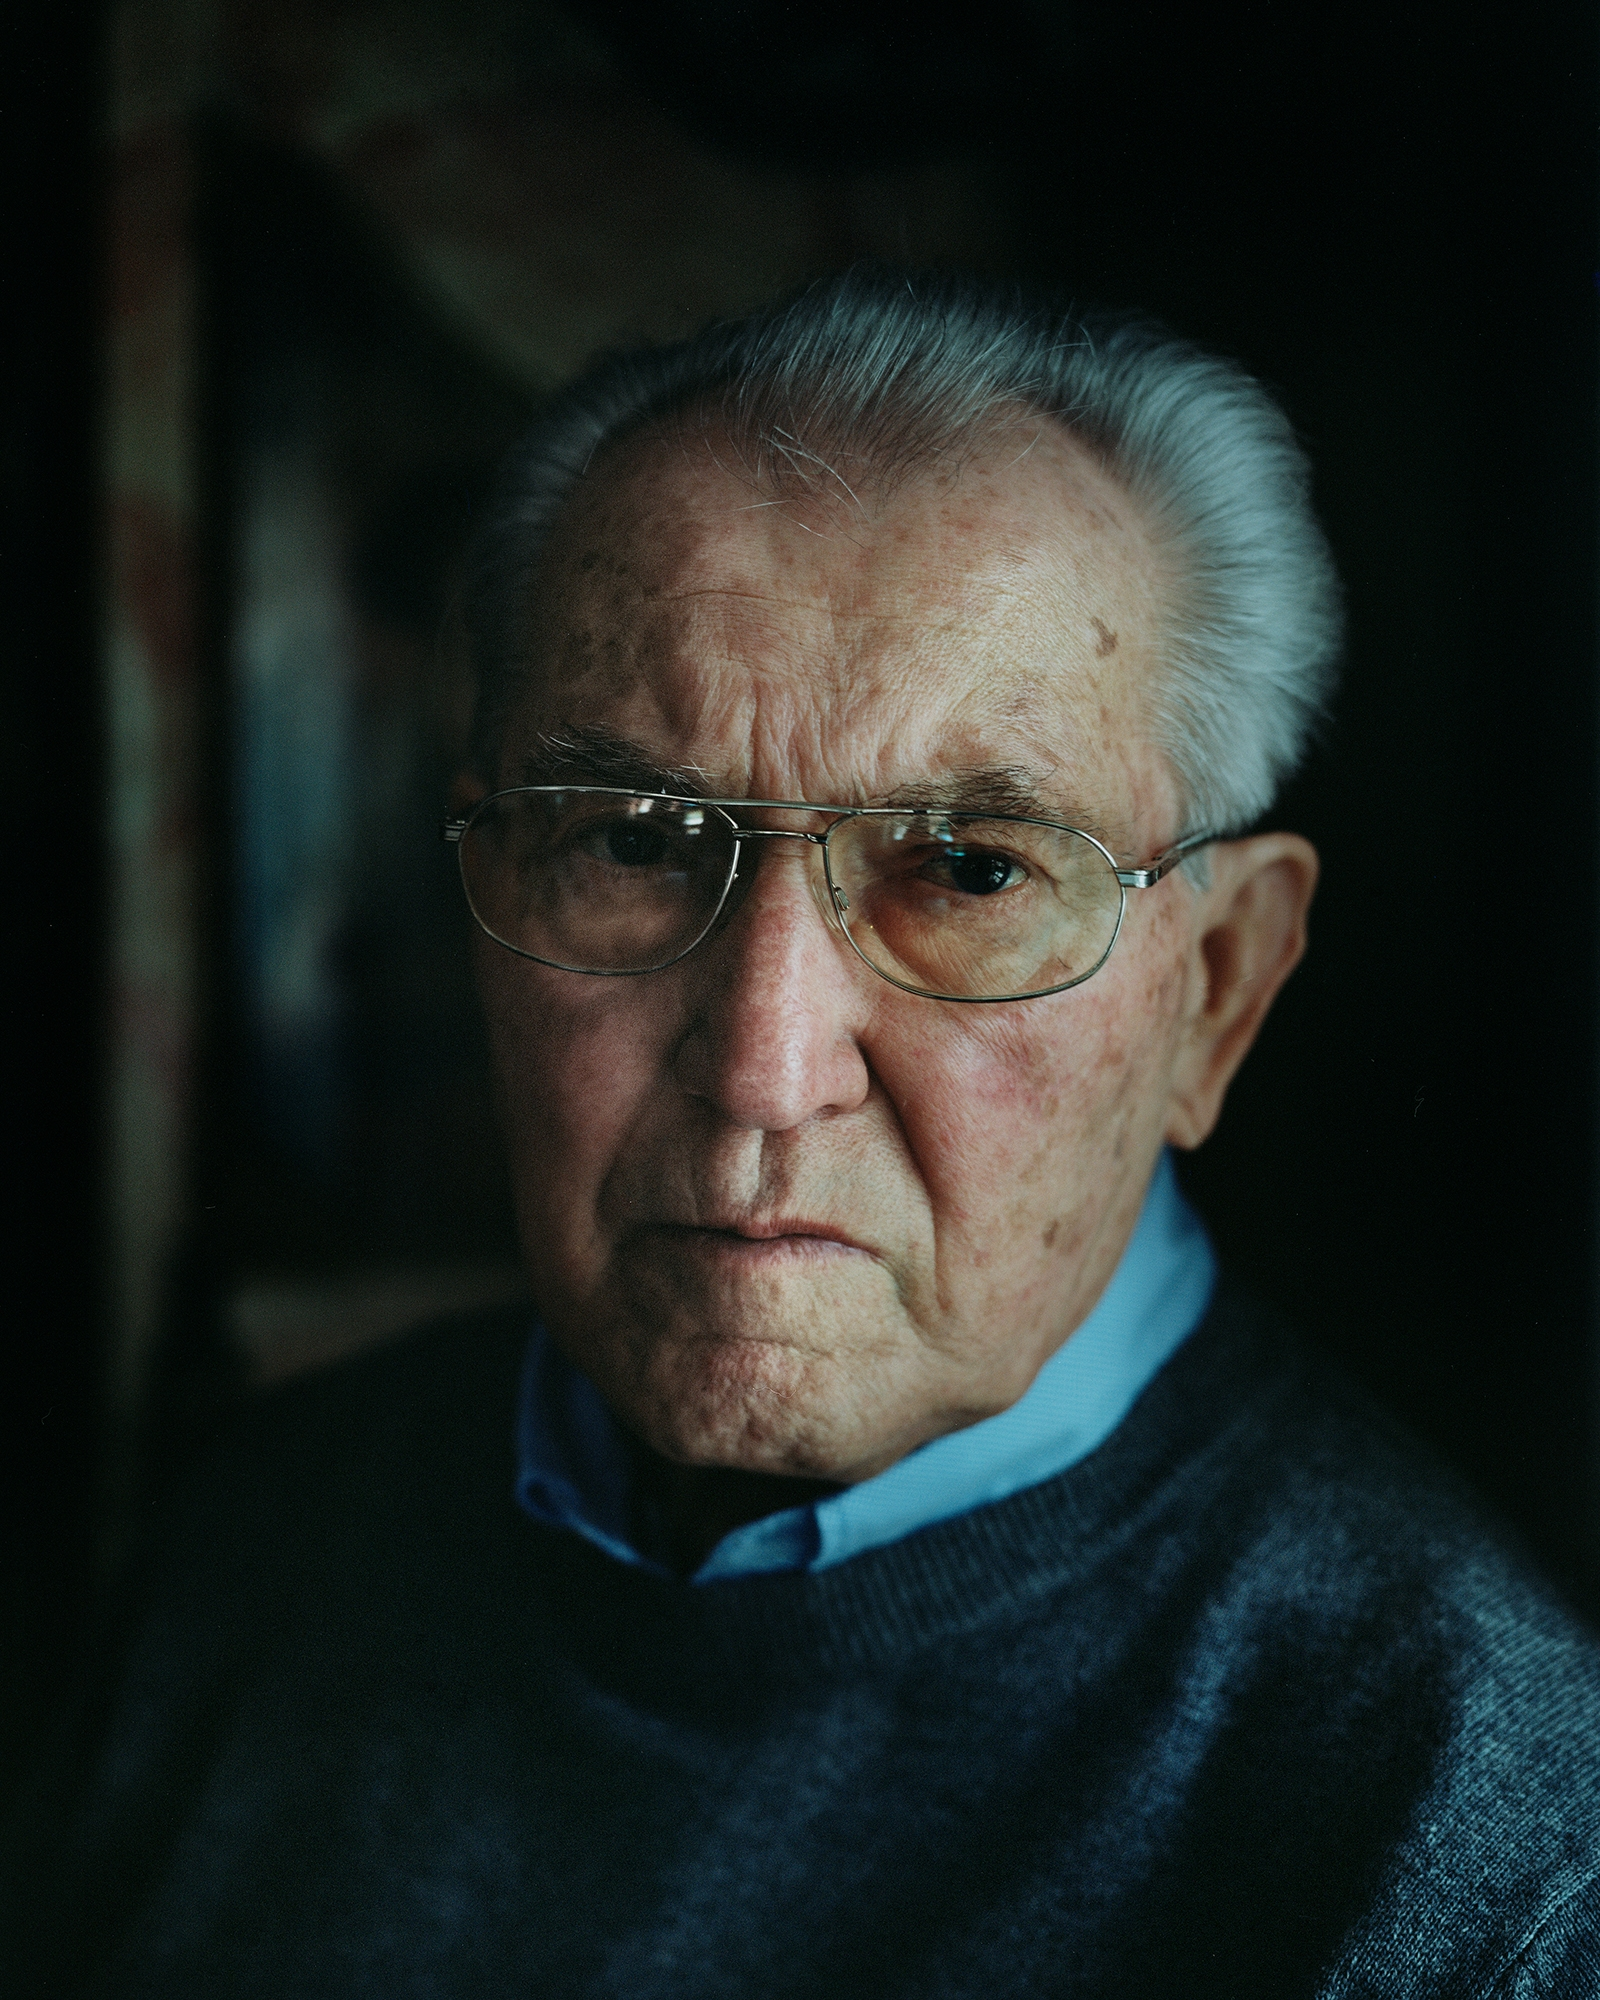 Tuesday marks the 70th anniversary of the liberation of the Nazi's notorious Auschwitz concentration camp. Hermann Hoellenreiner, 81, is a survivor.